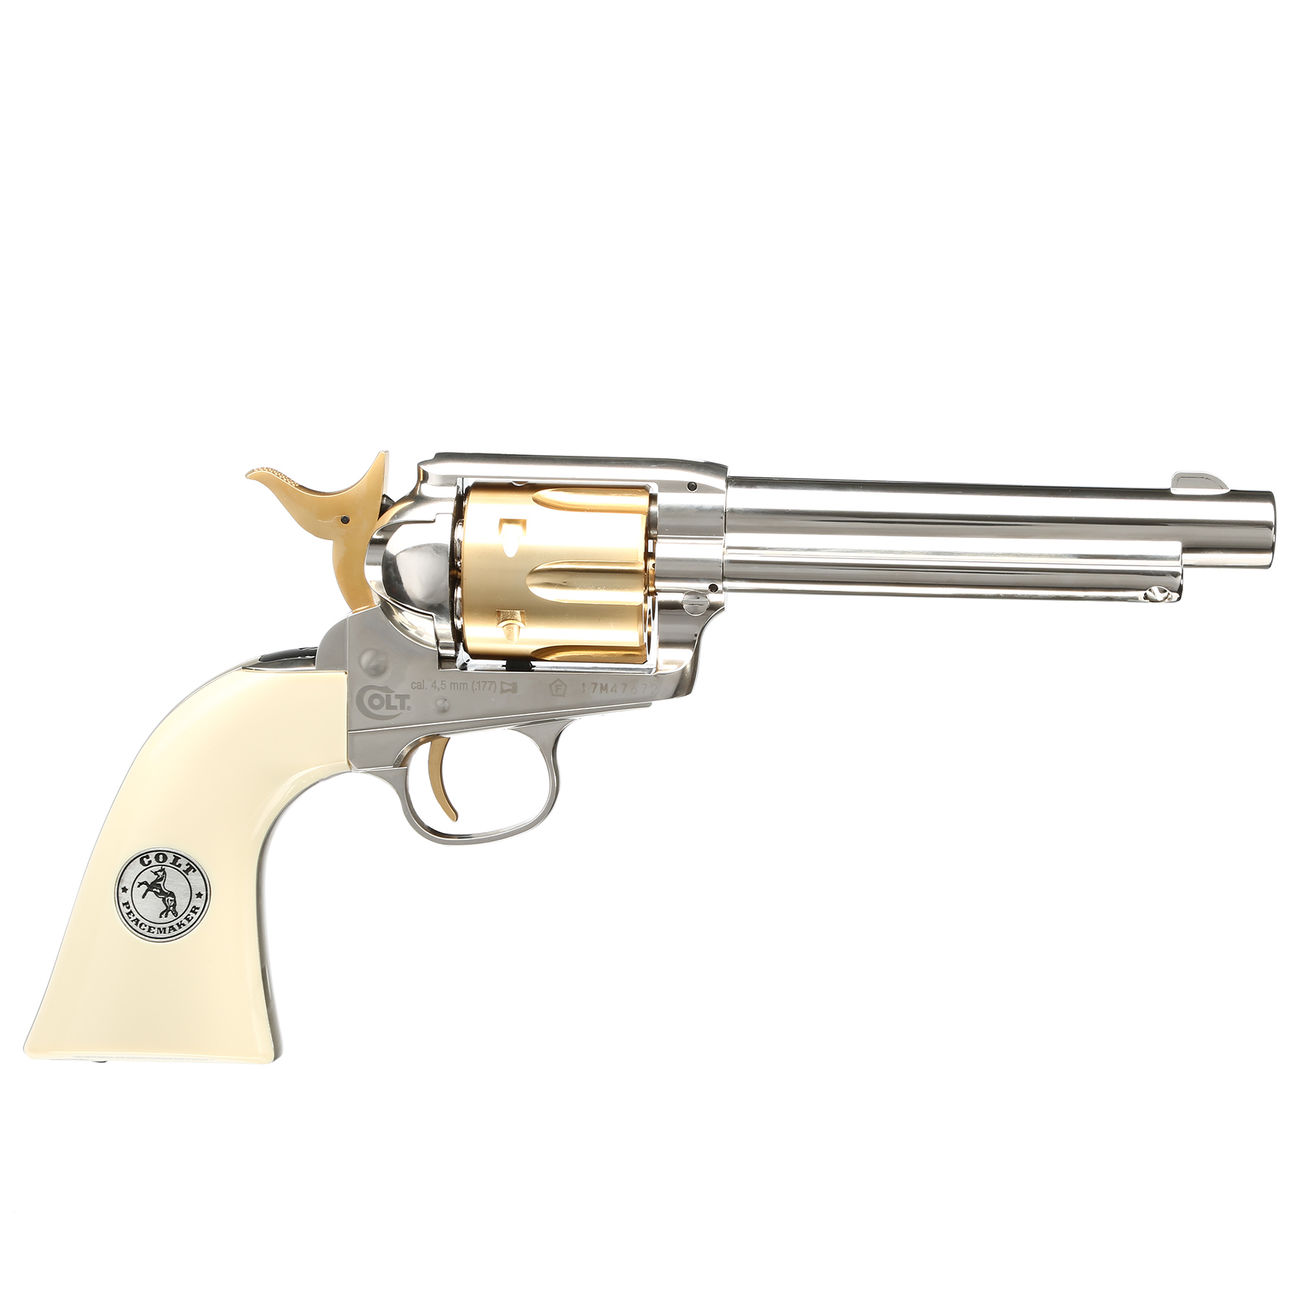 Colt Single Action Army 45 gold / nickel finish CO2 Revolver Kal. 4,5mm Diabolo gezogener Lauf 3